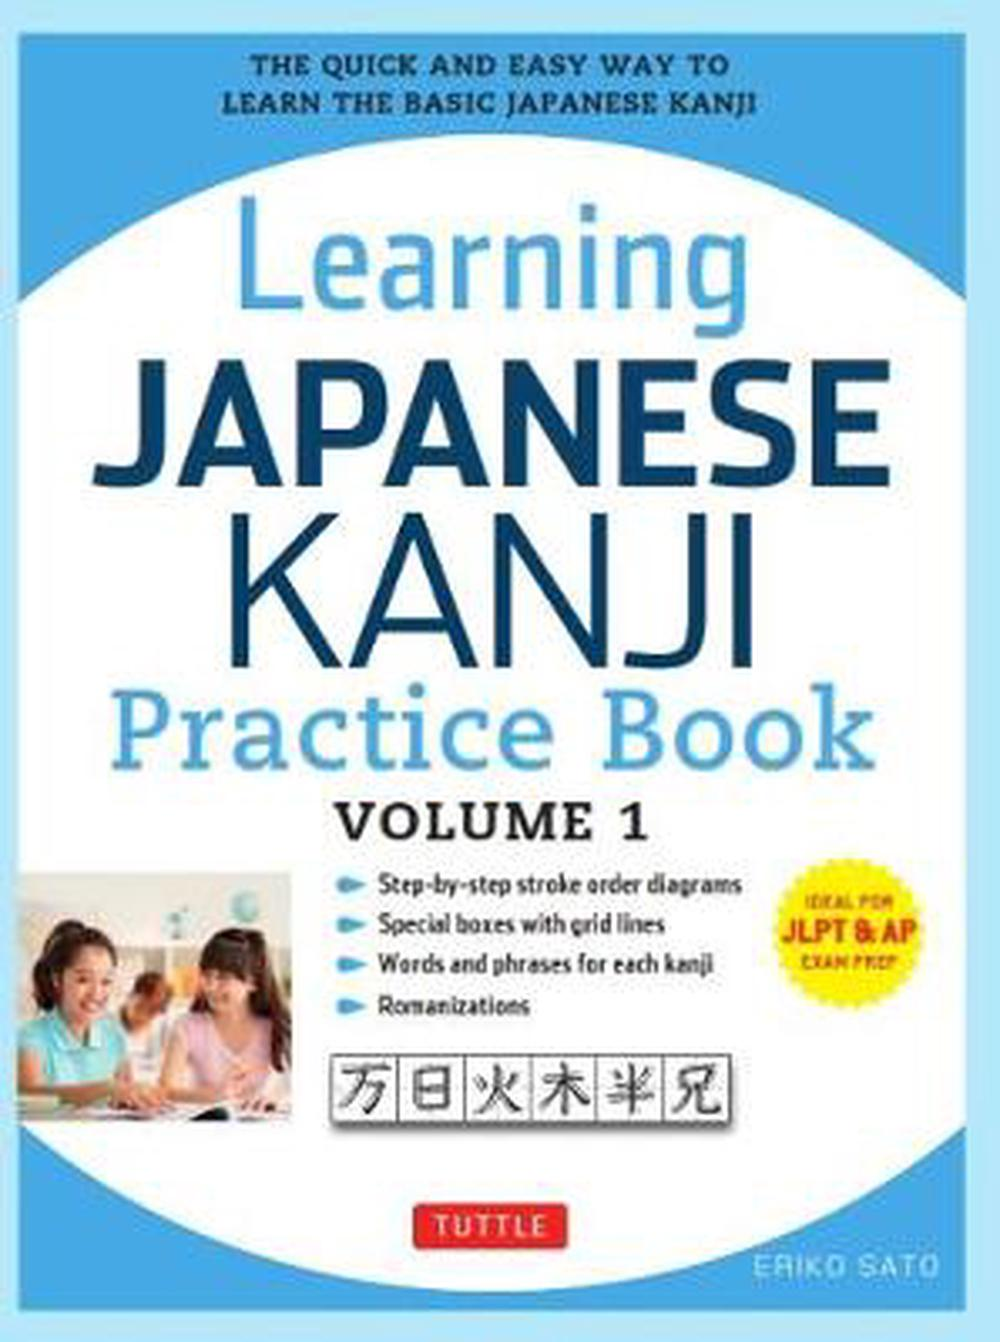 Learning Japanese Kanji Practice Book Volume 1: The Quick and Easy Way to Learn the Basic Japanese Kanji